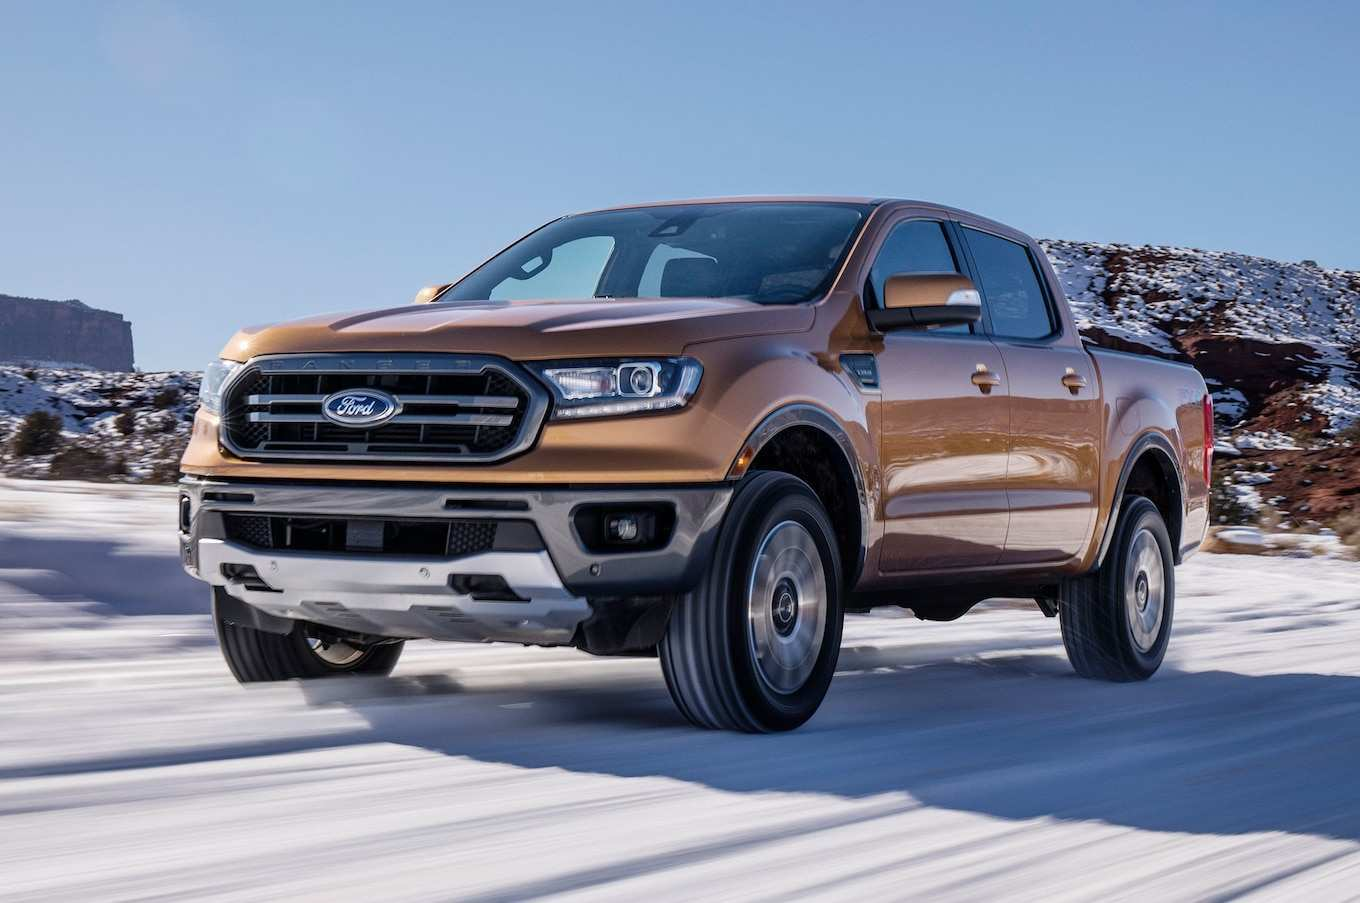 97 Gallery of Ford Ranger 2019 Specs Performance And New Engine New Review for Ford Ranger 2019 Specs Performance And New Engine